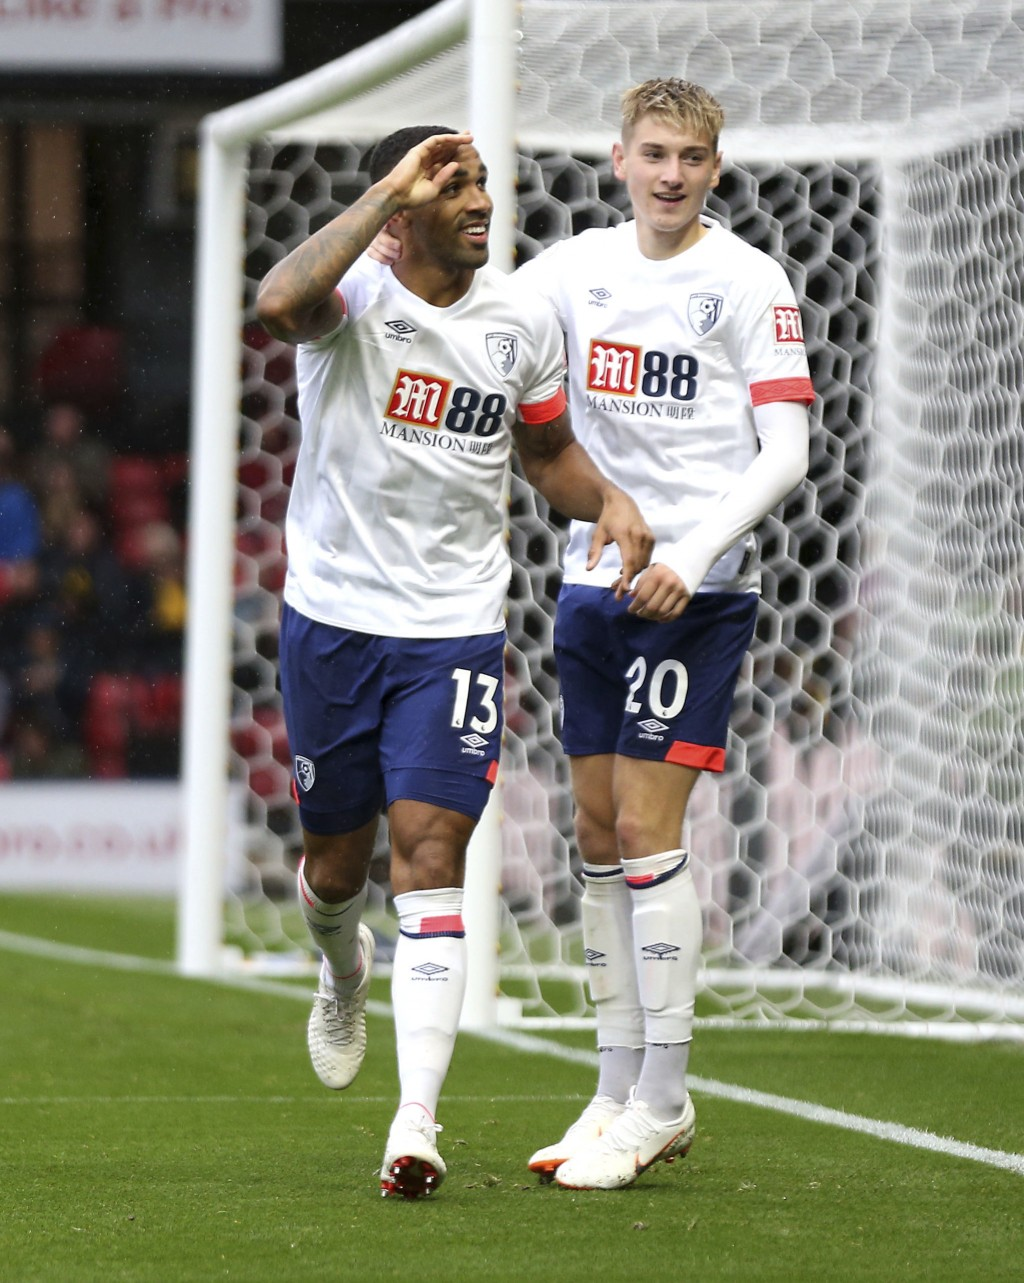 Bournemouth's Callum Wilson, left, celebrates scoring against Watford during the English Premier League soccer match at Vicarage Road, Watford, Englan...